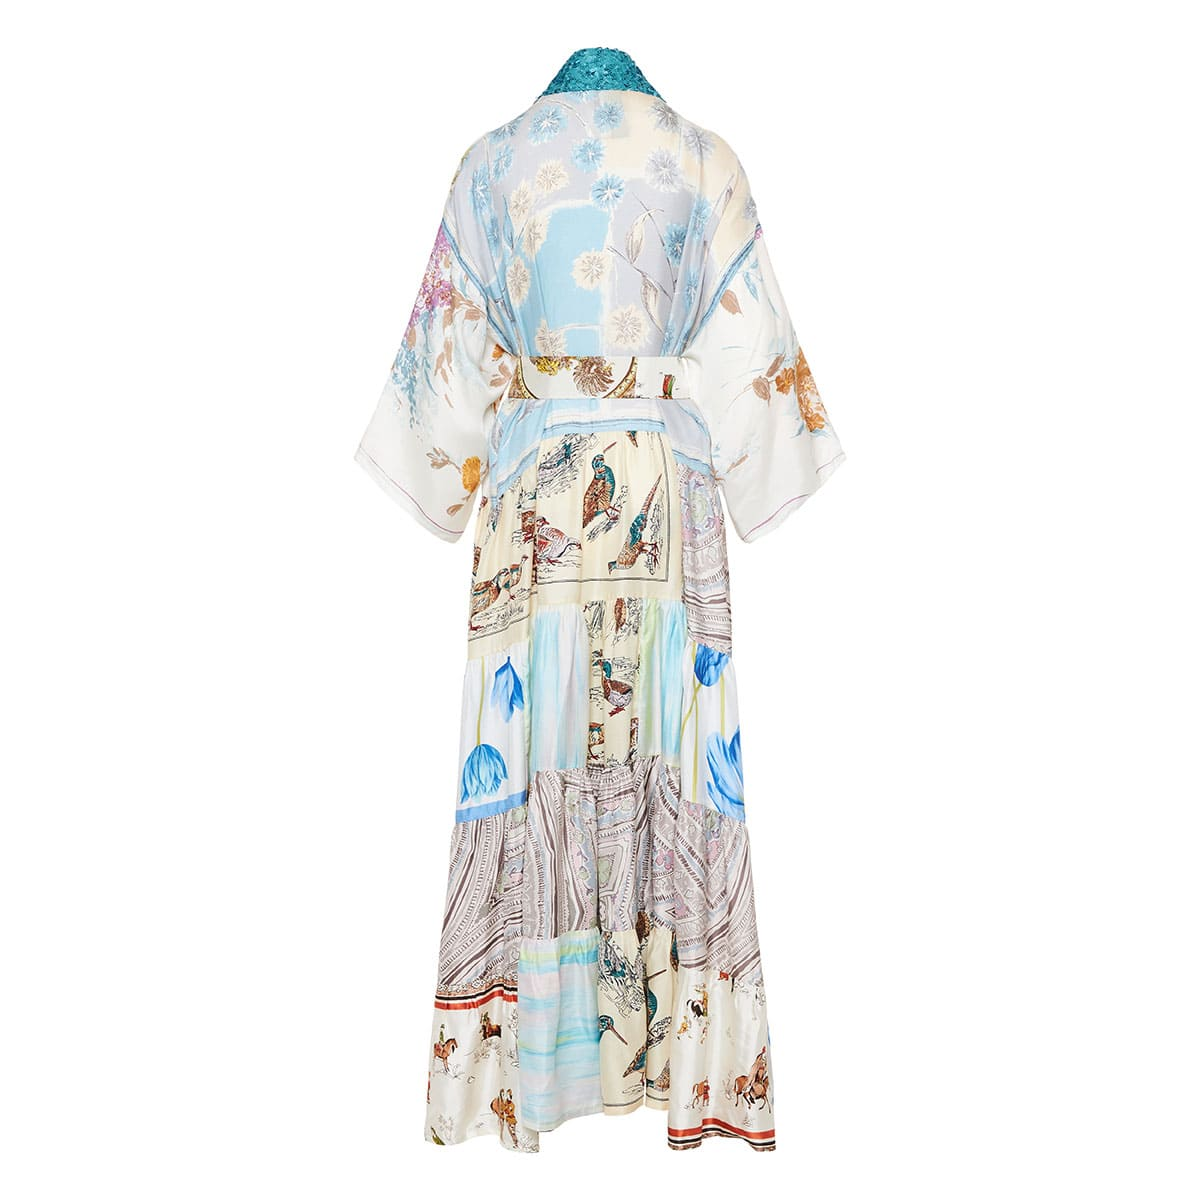 Sequin-trimmed patchwork printed kimono dress